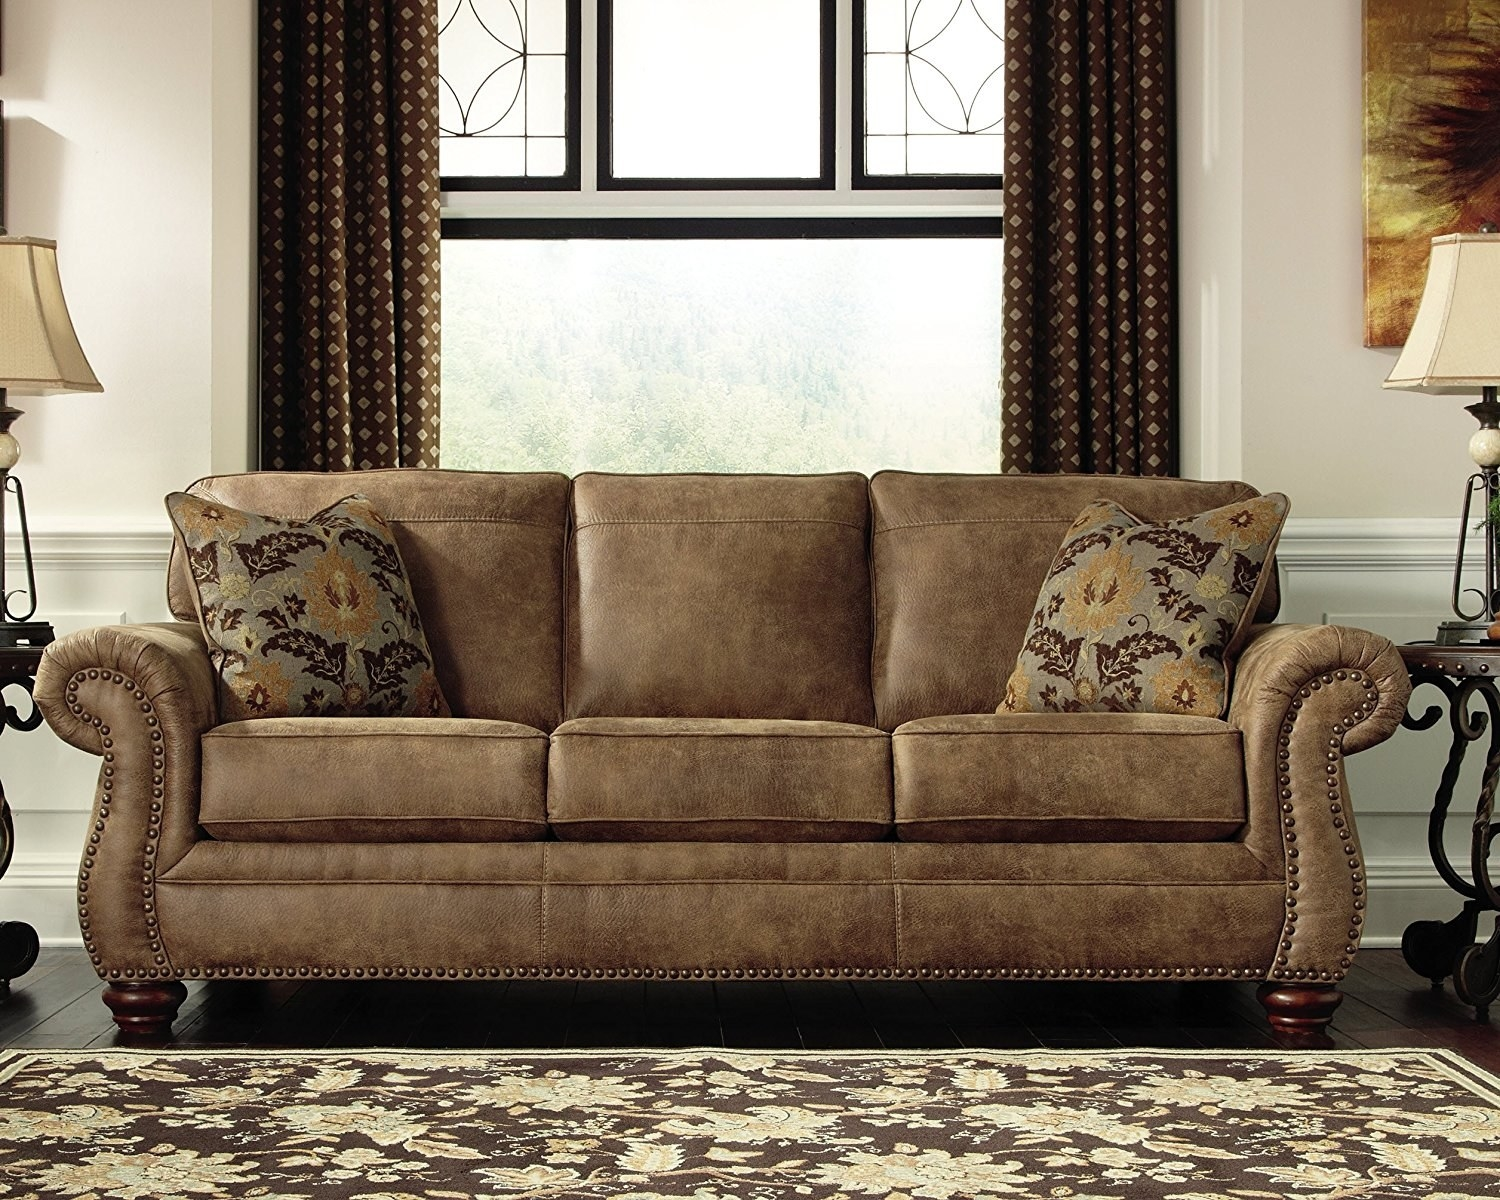 20 Most Comfortable Sleeper Sofas 2019 2020 Pull Out Couch